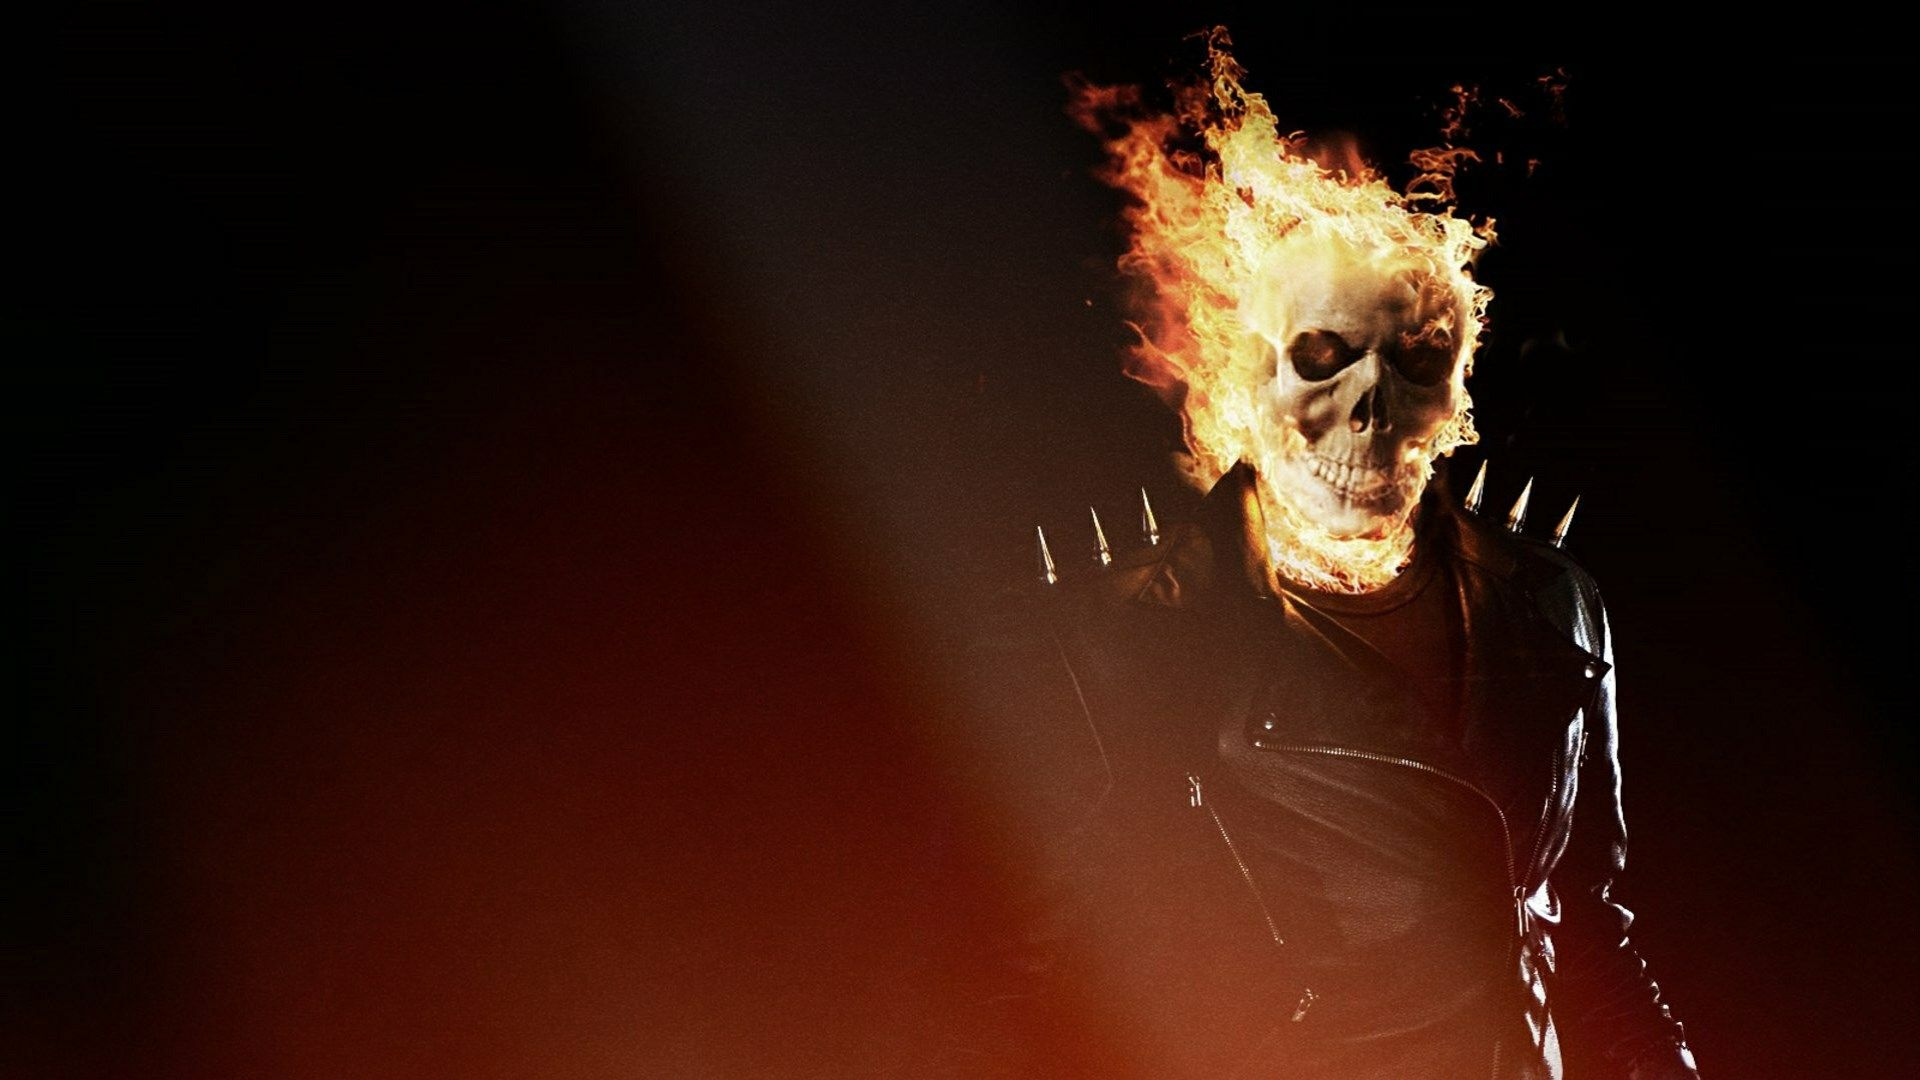 free desktop wallpaper downloads ghost rider | scream | pinterest